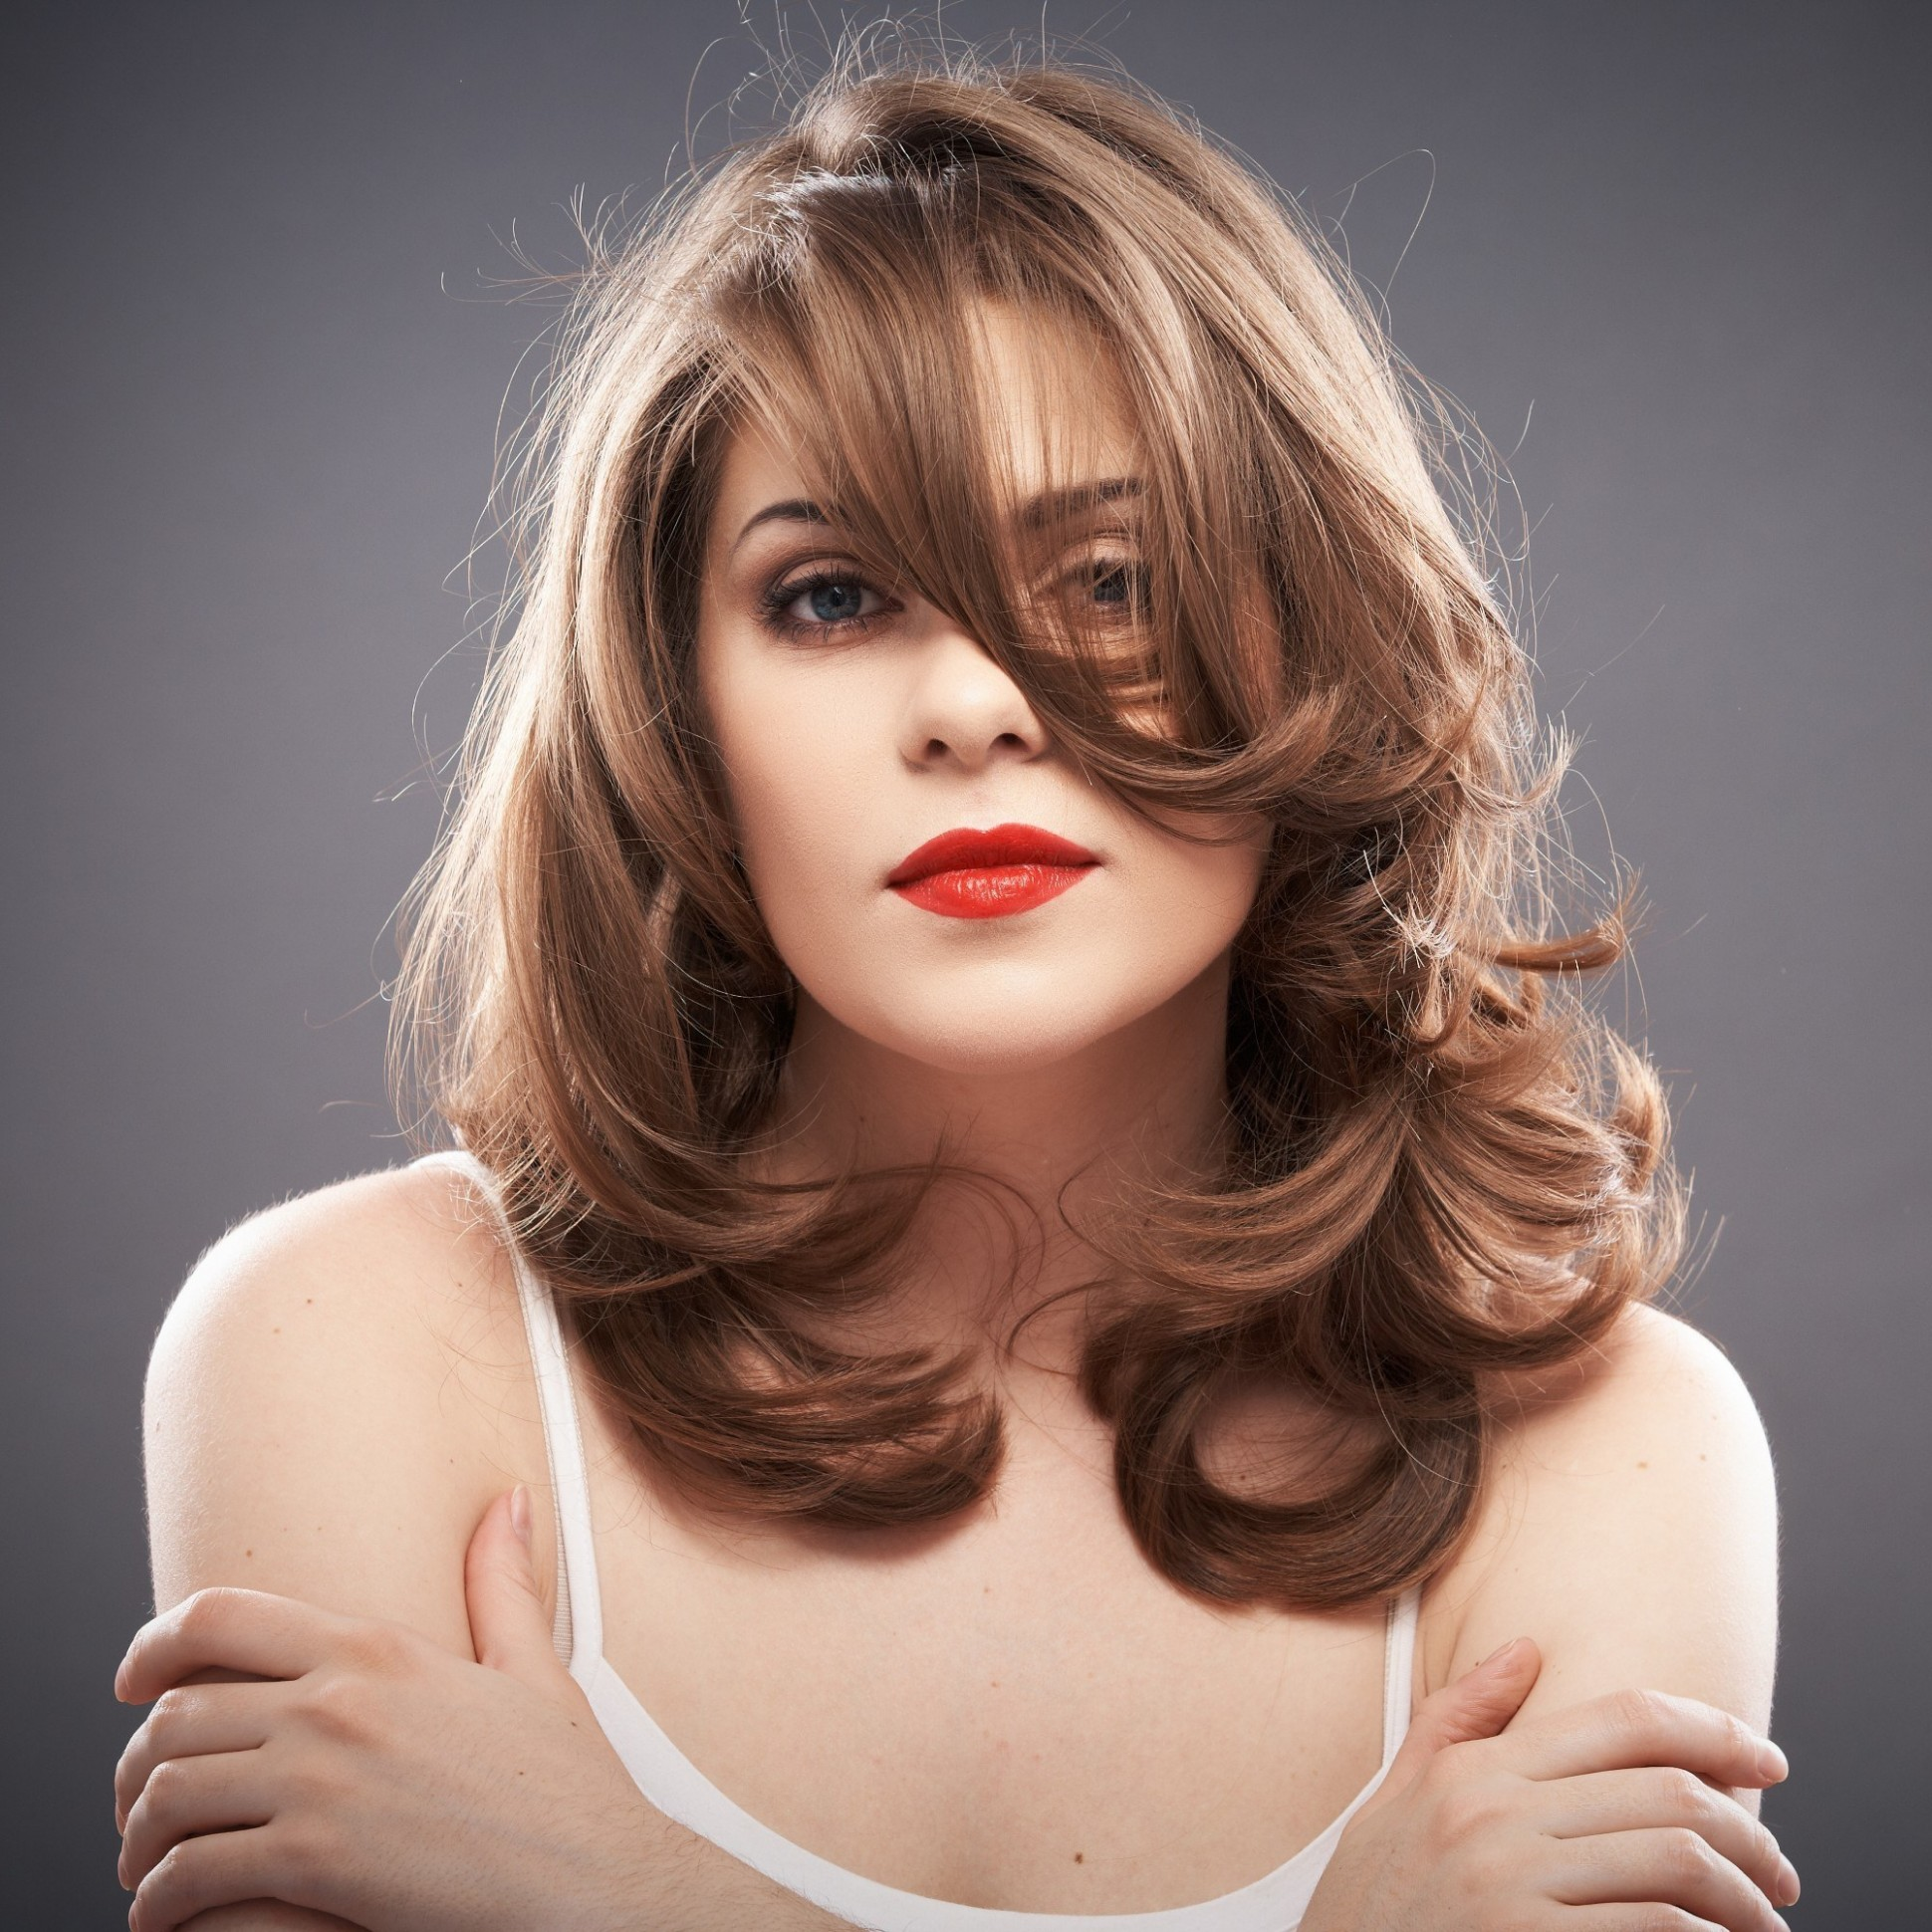 Best Filipino Hairstyles For Round Faces All Things Hair PH Haircut For Round Face Girl